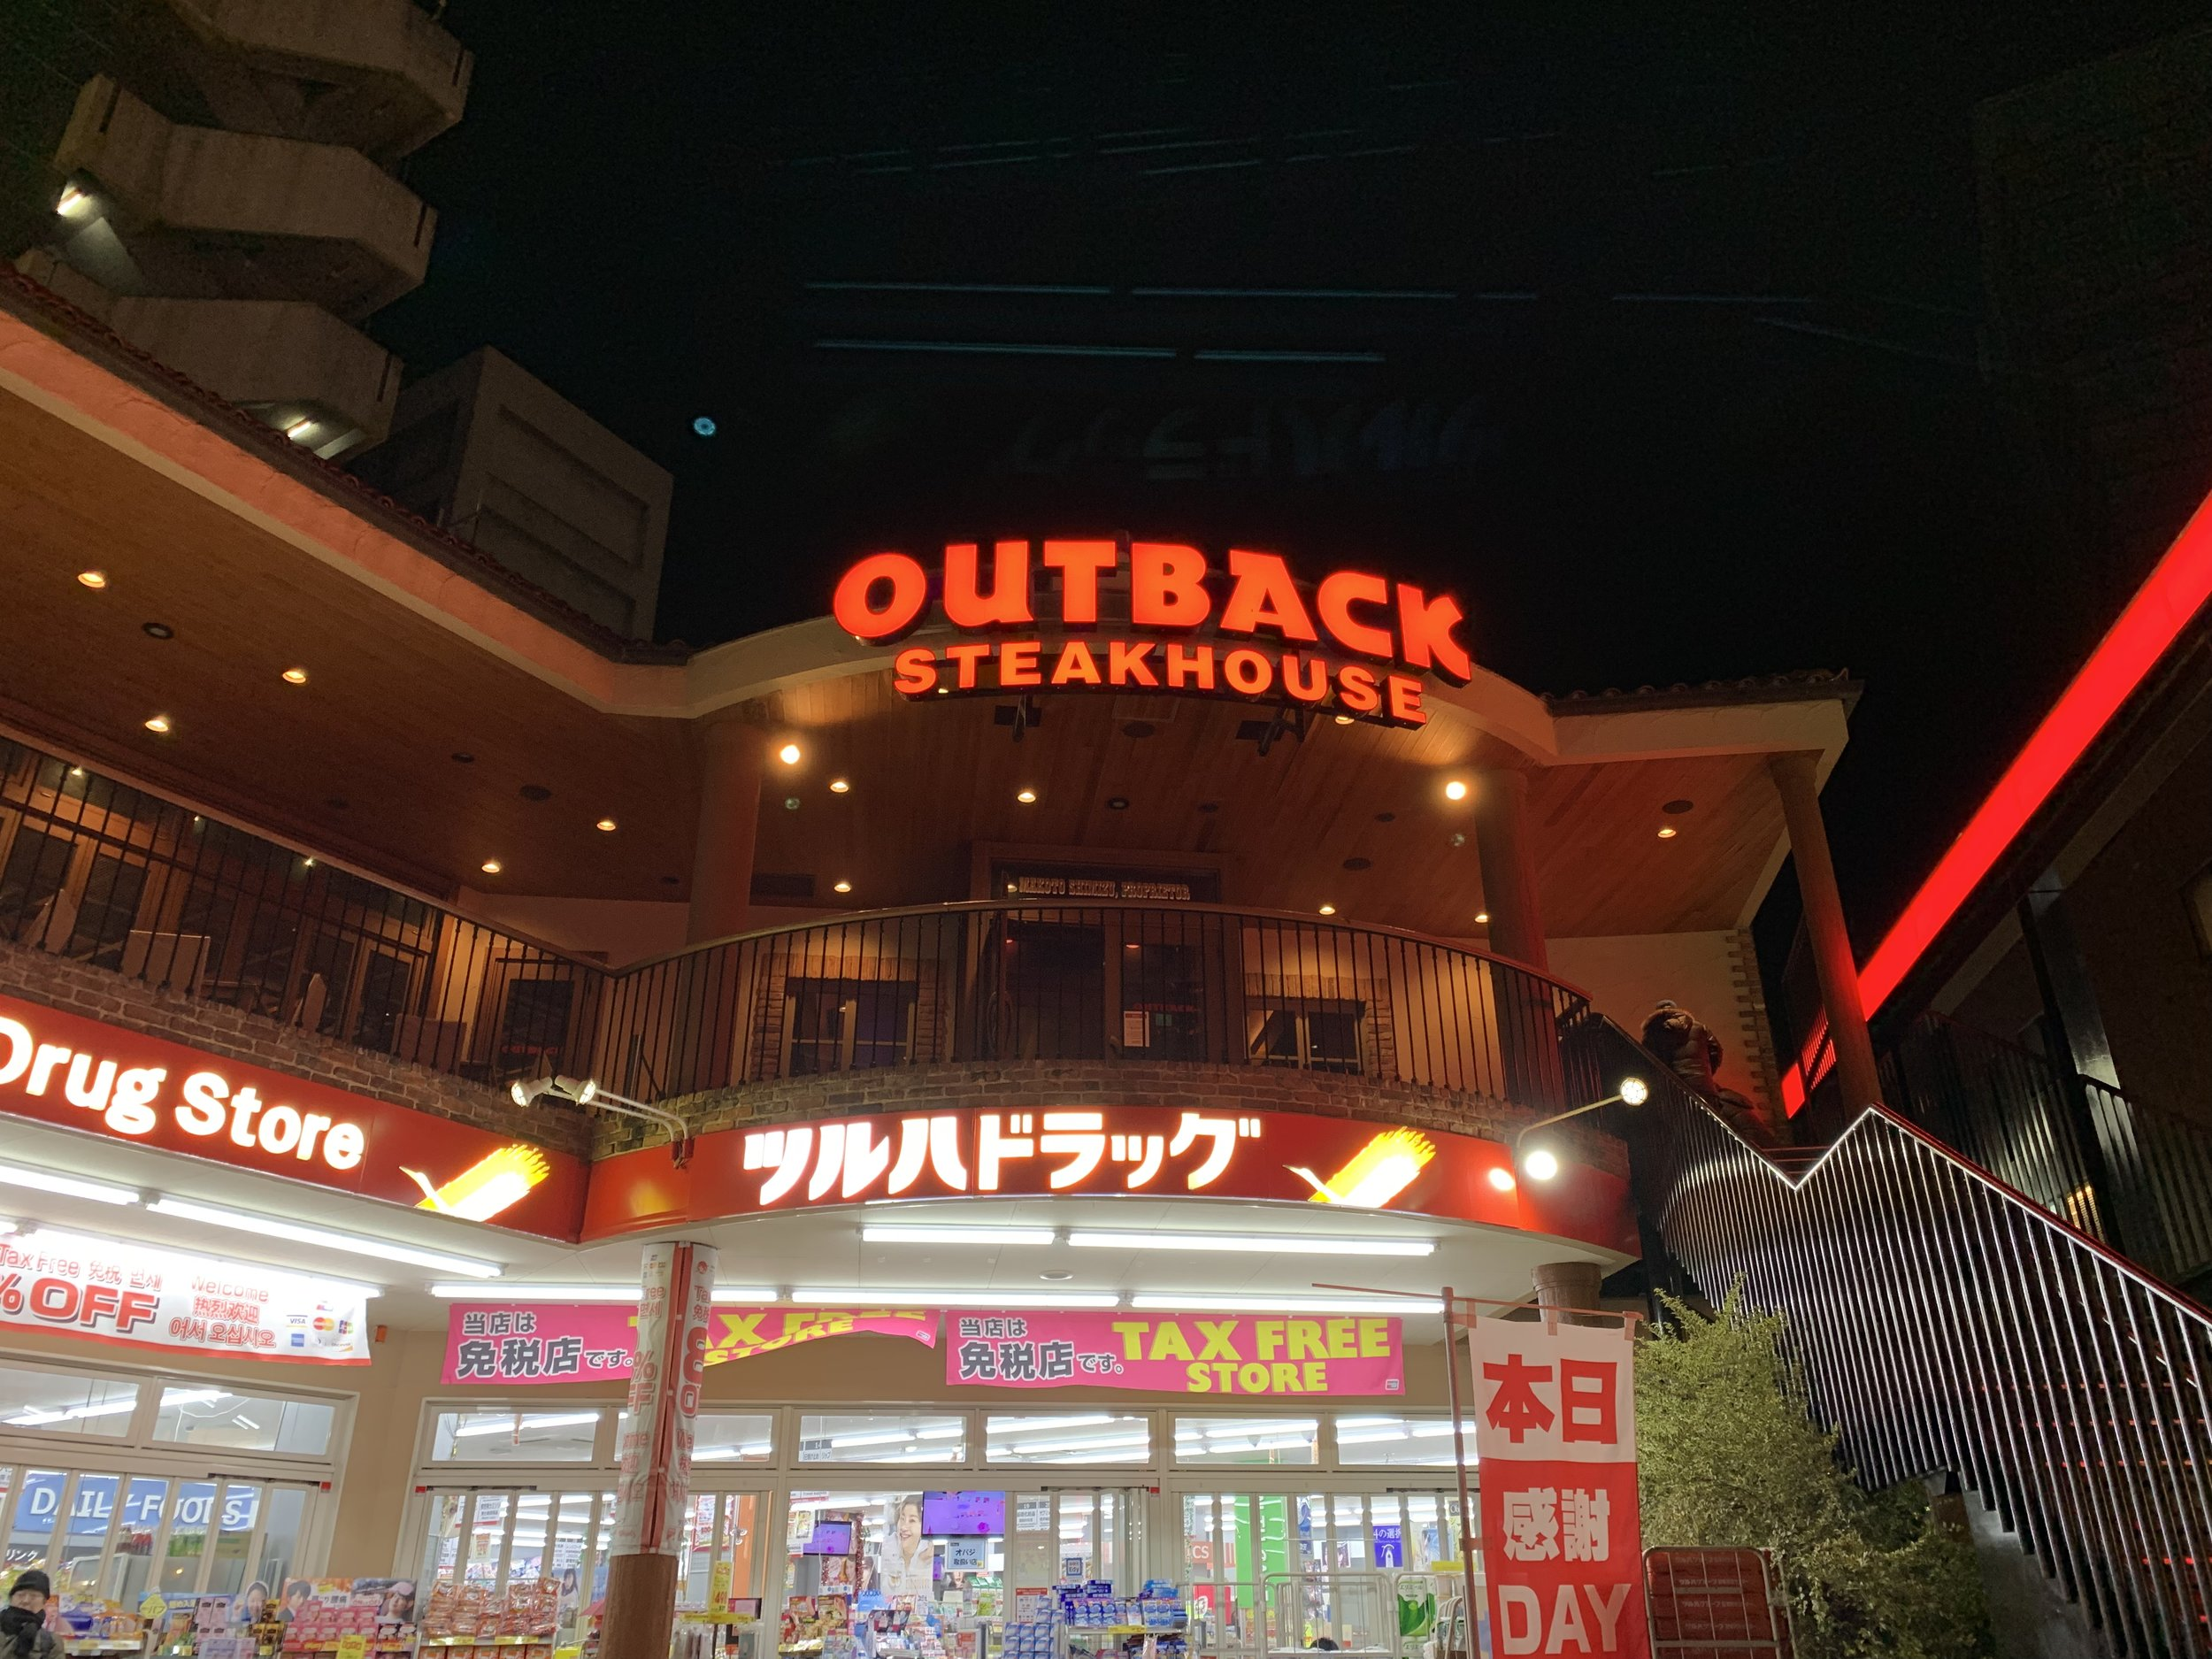 I see Outback Steakhouse has also made it to Japan. Japanese enjoy a taste of the Outback as well.